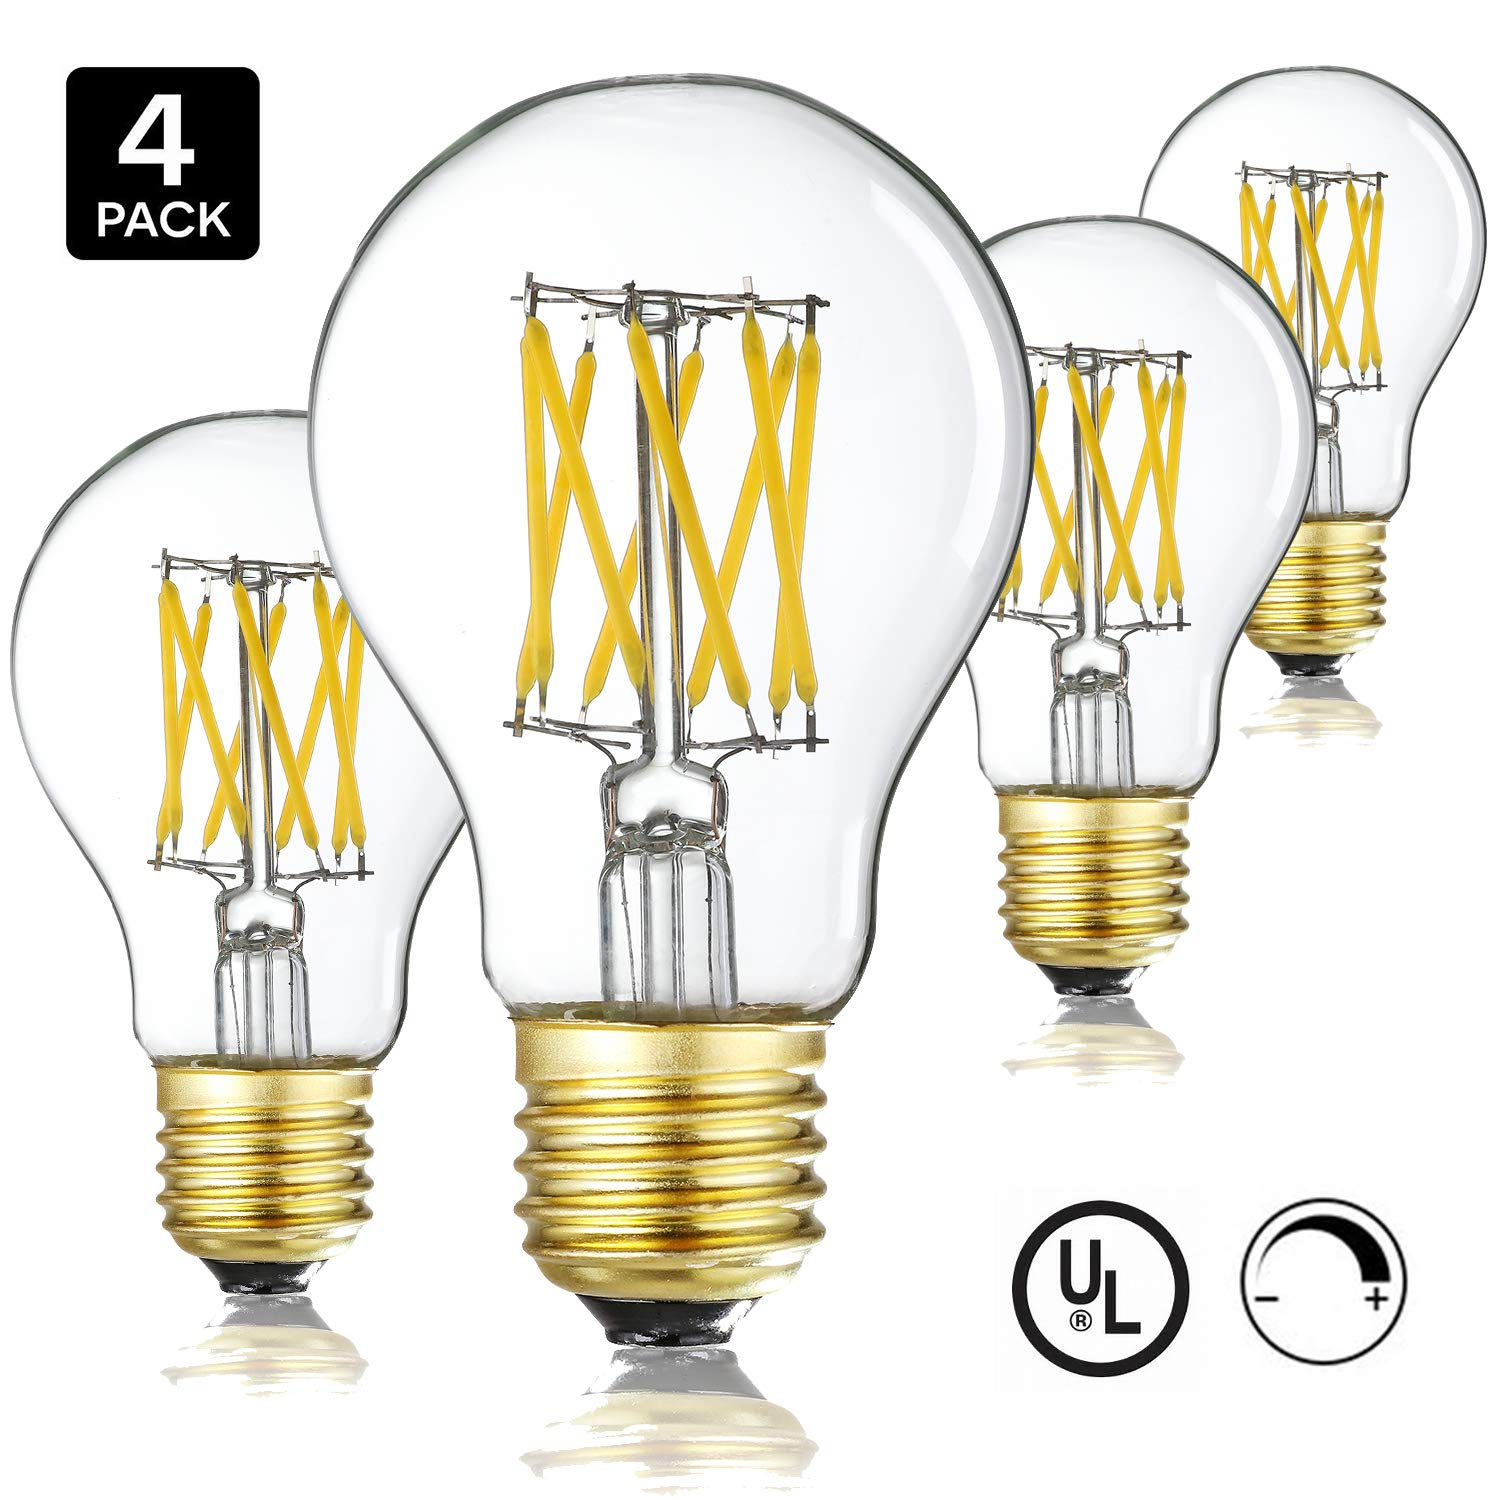 Leools 8W Edison Style Vintage LED Filament Light Bulb, 75W Incandescent Replacement, Daylight Glow 4000K, 800LM, E26 Medium Base Lamp, A19(A60) Antique Shape, Clear Glass Cover, Dimmable(4-Pack)